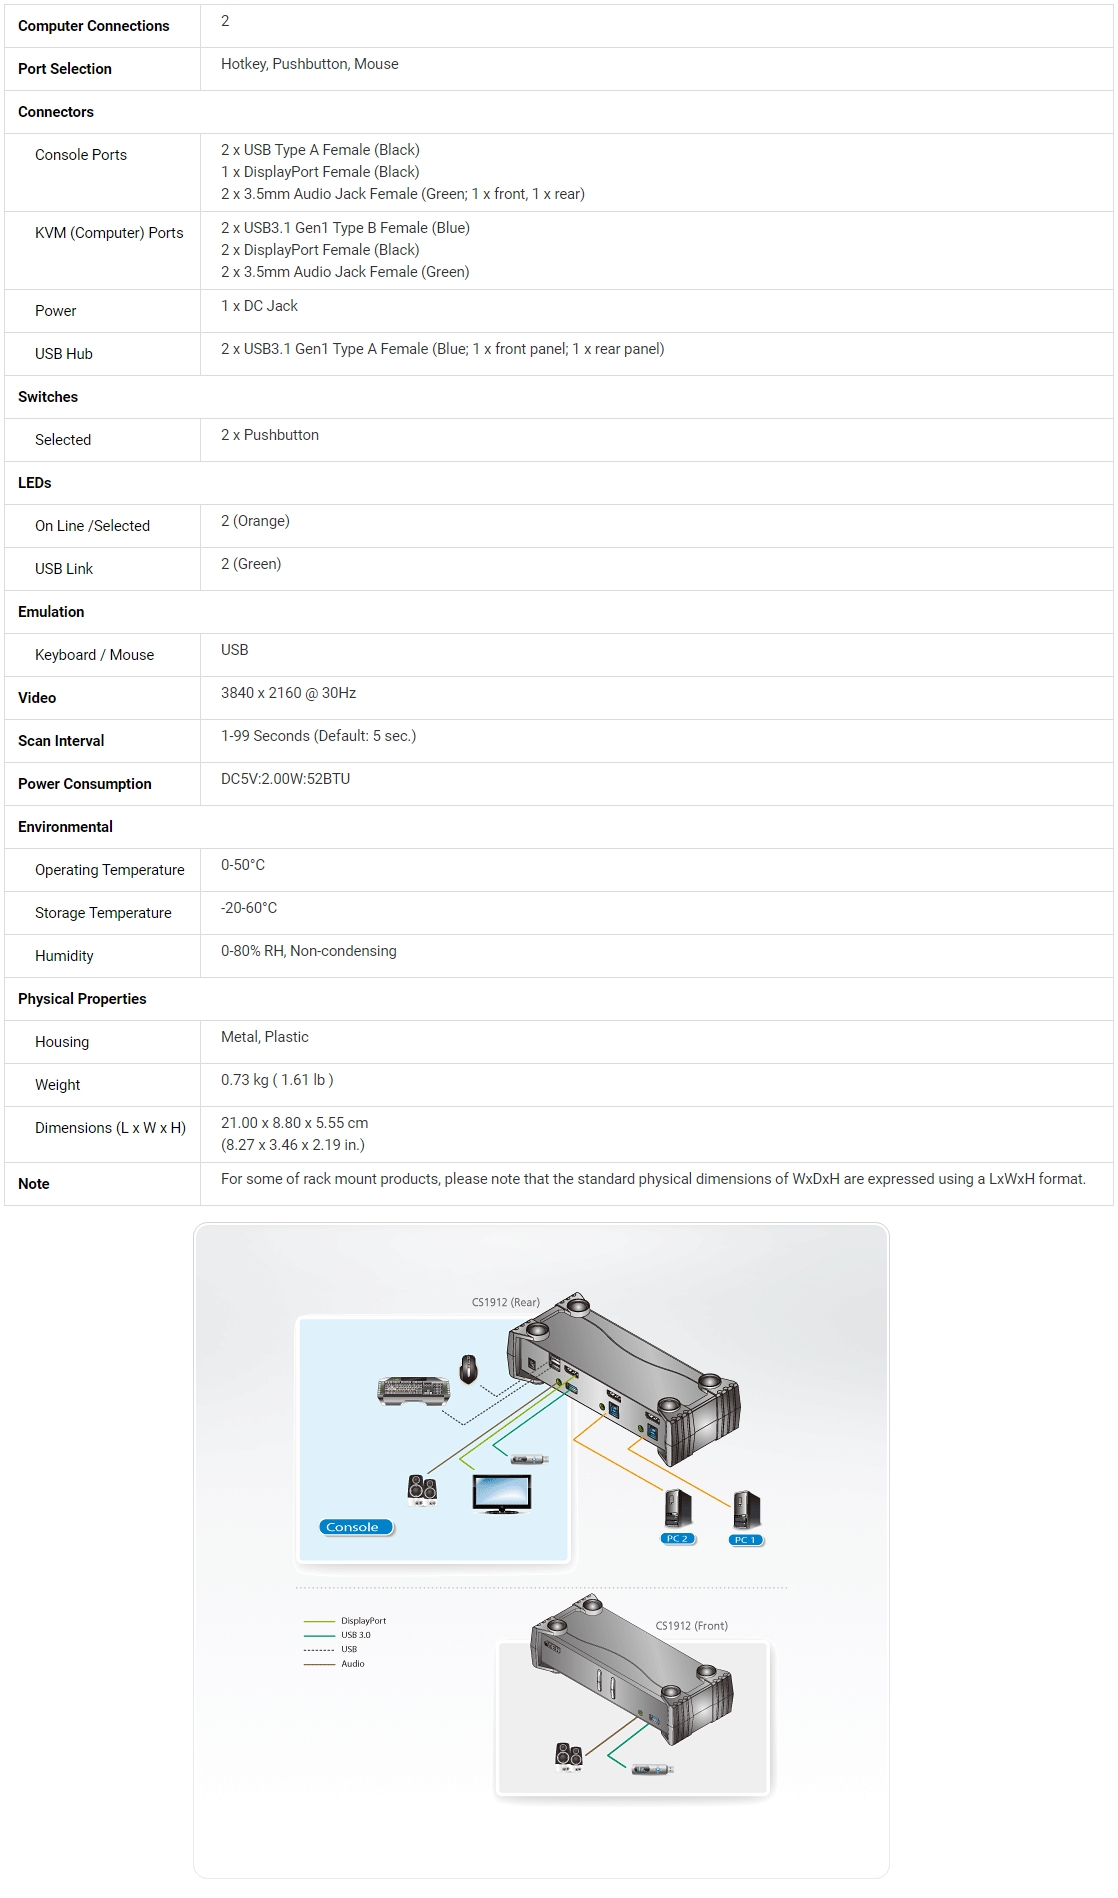 A large marketing image providing additional information about the product ATEN 2 Port USB 3.0 Displayport KVMP Switch - Additional alt info not provided